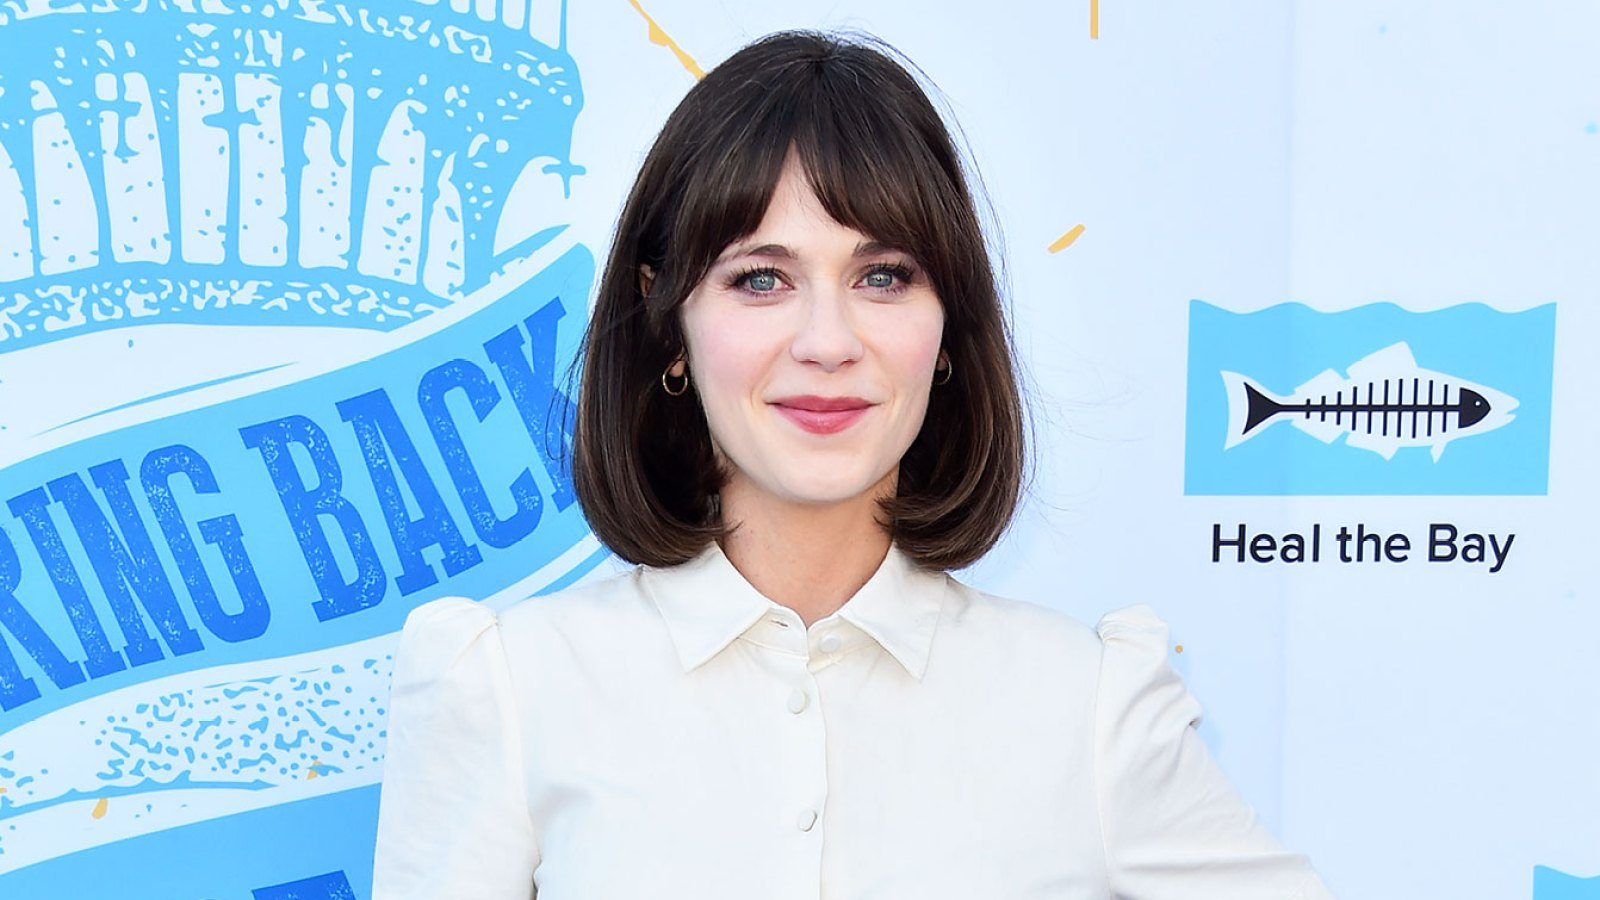 816c2c7d395b Zooey Deschanel Reveals Why She Loves to Cook With Her Kids